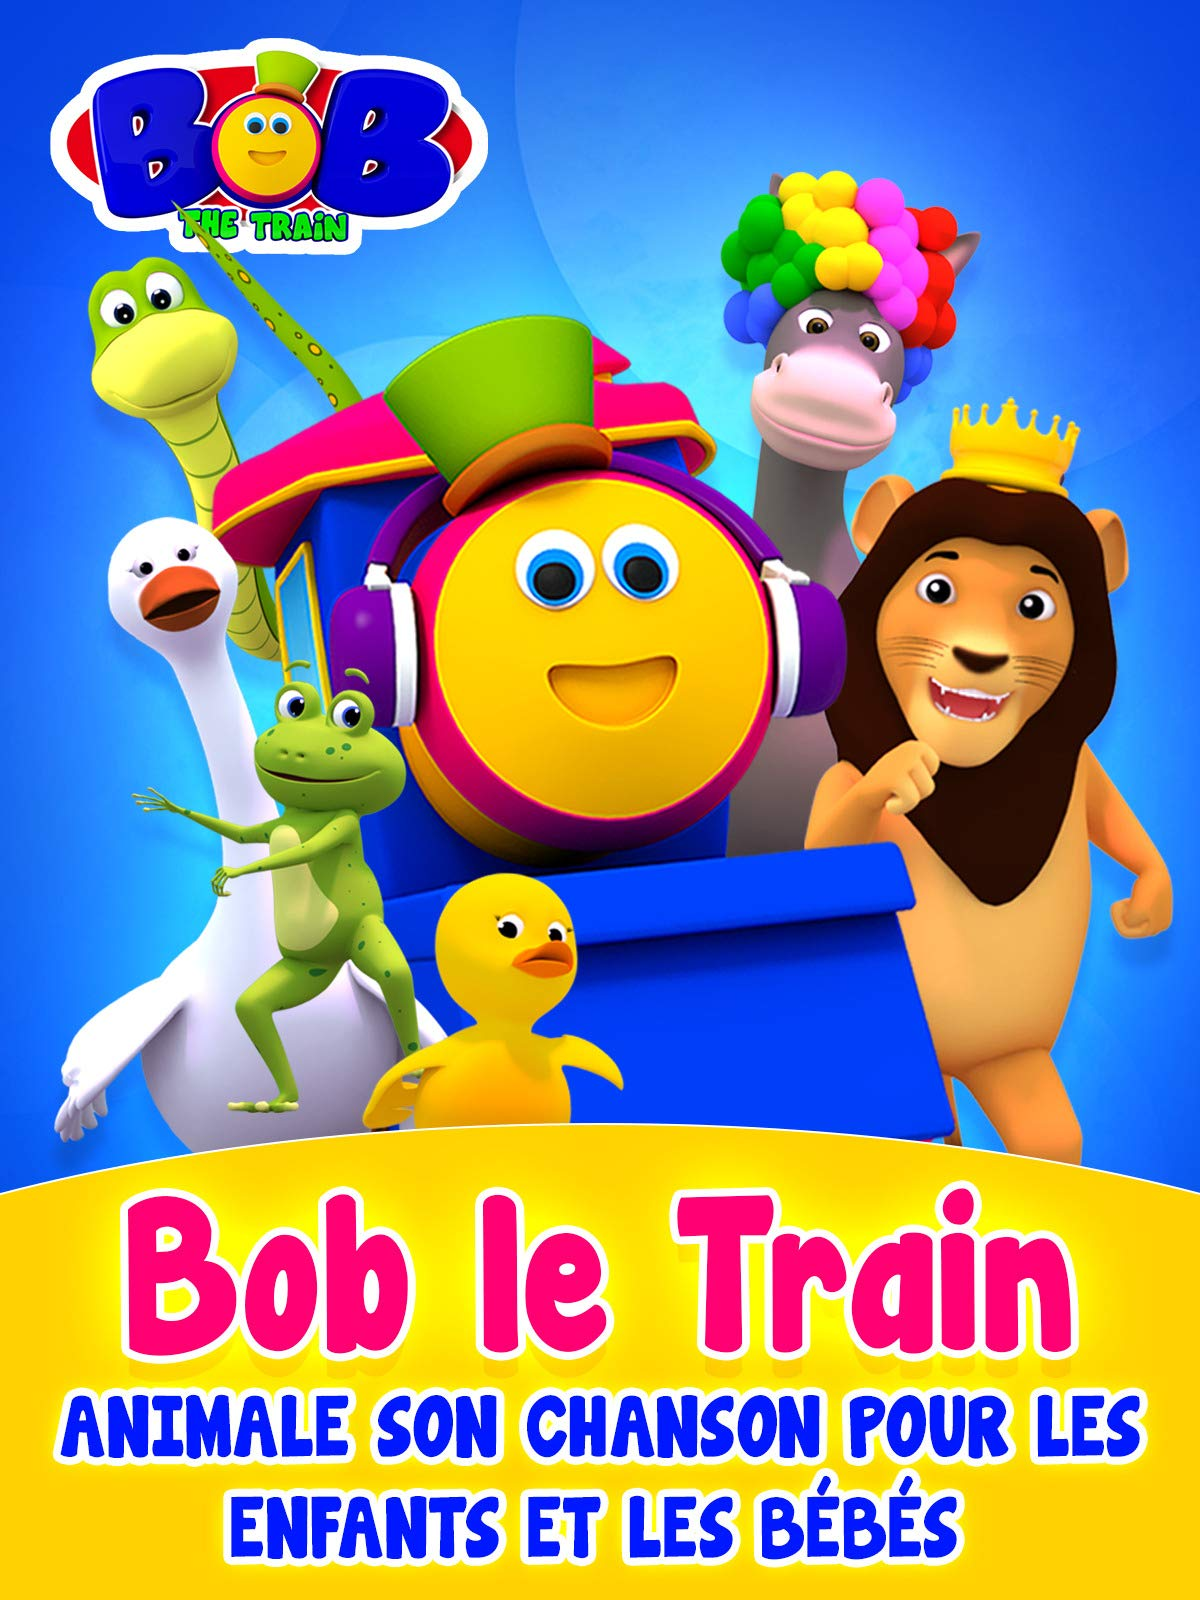 Bob The Train Animal Songs for Children and Babies